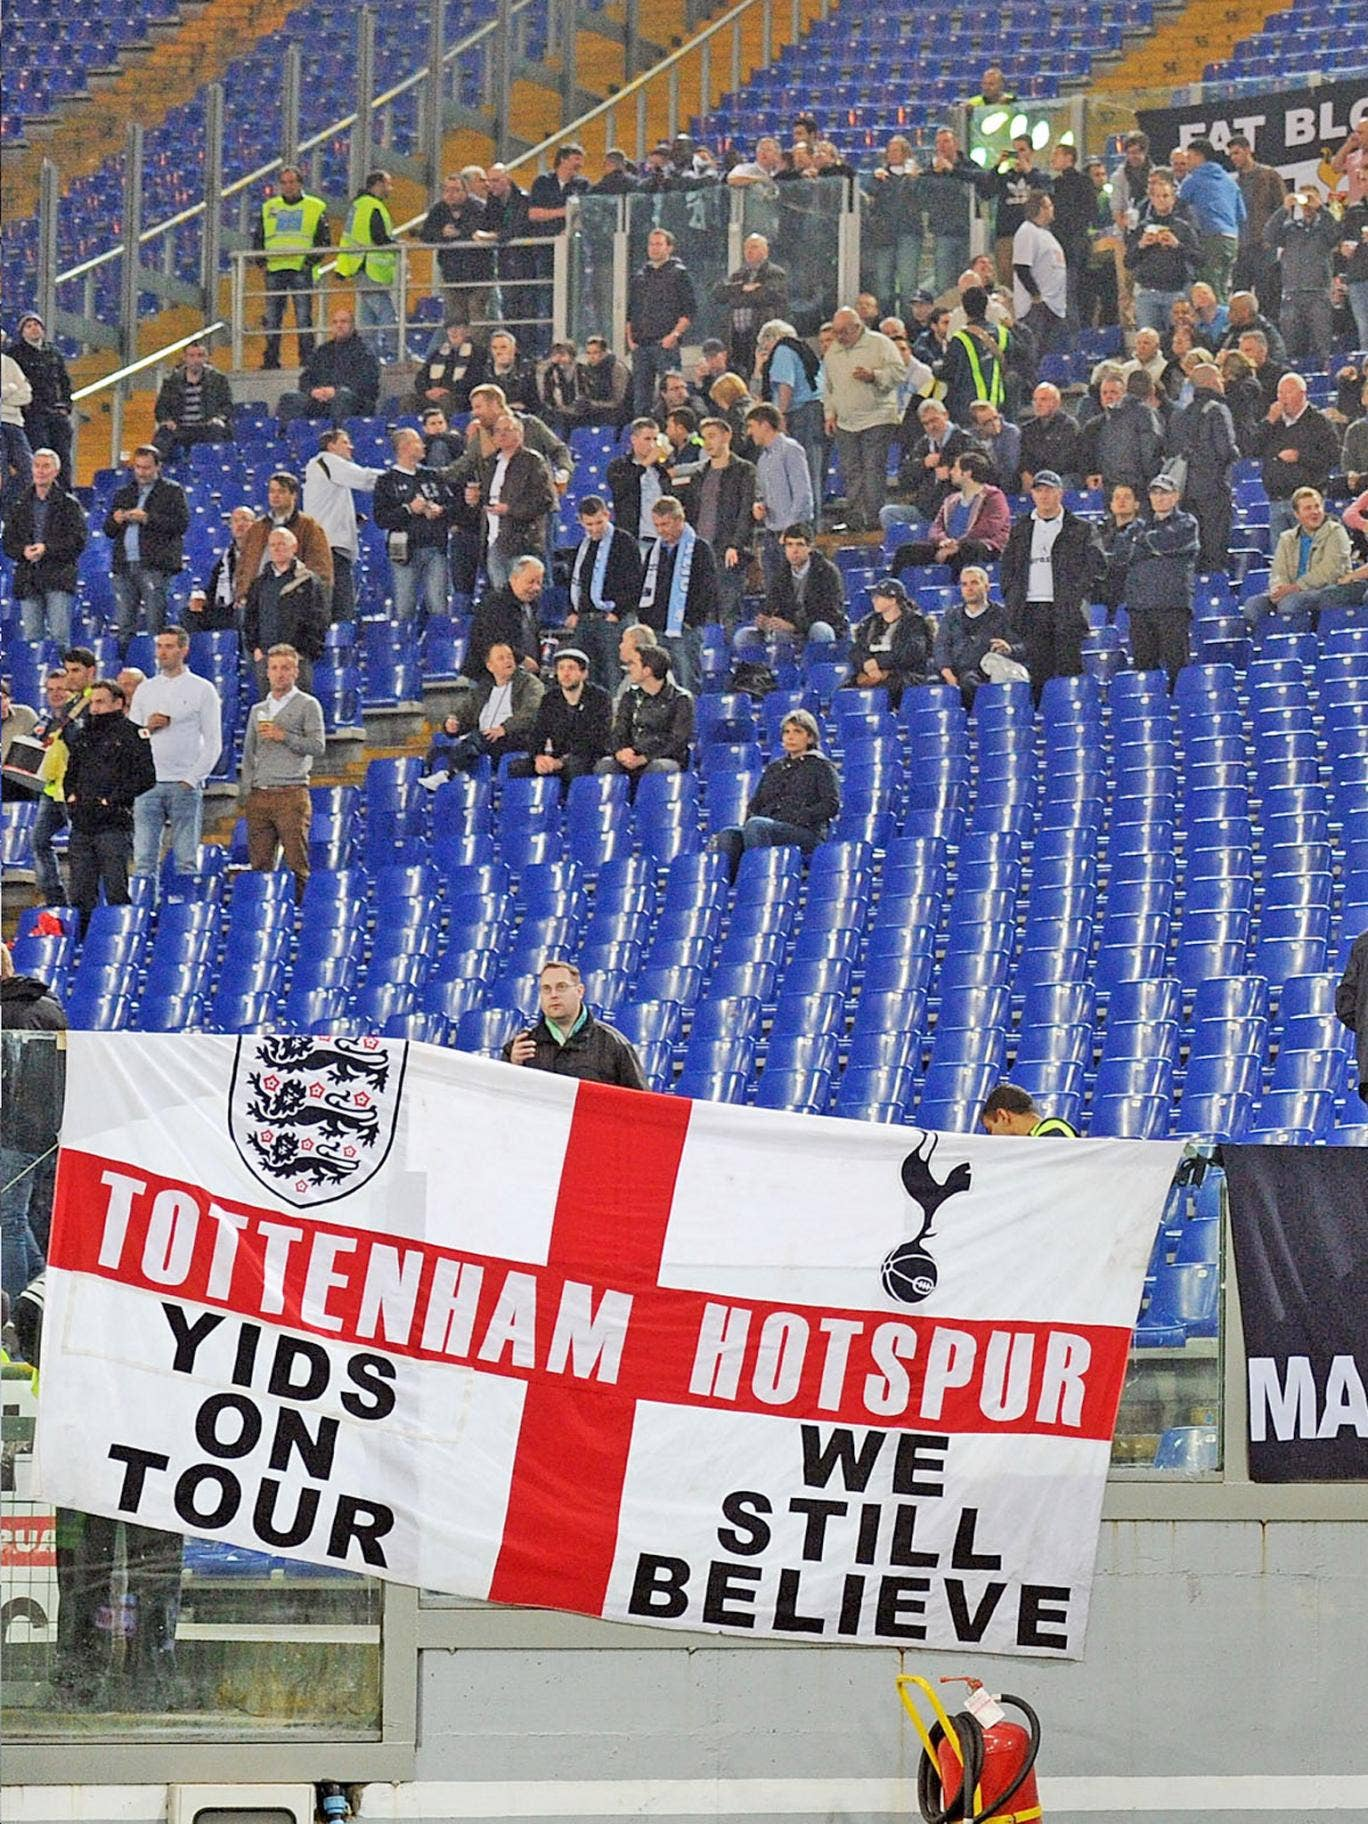 A section of Spurs fans rally behind a controversial banner